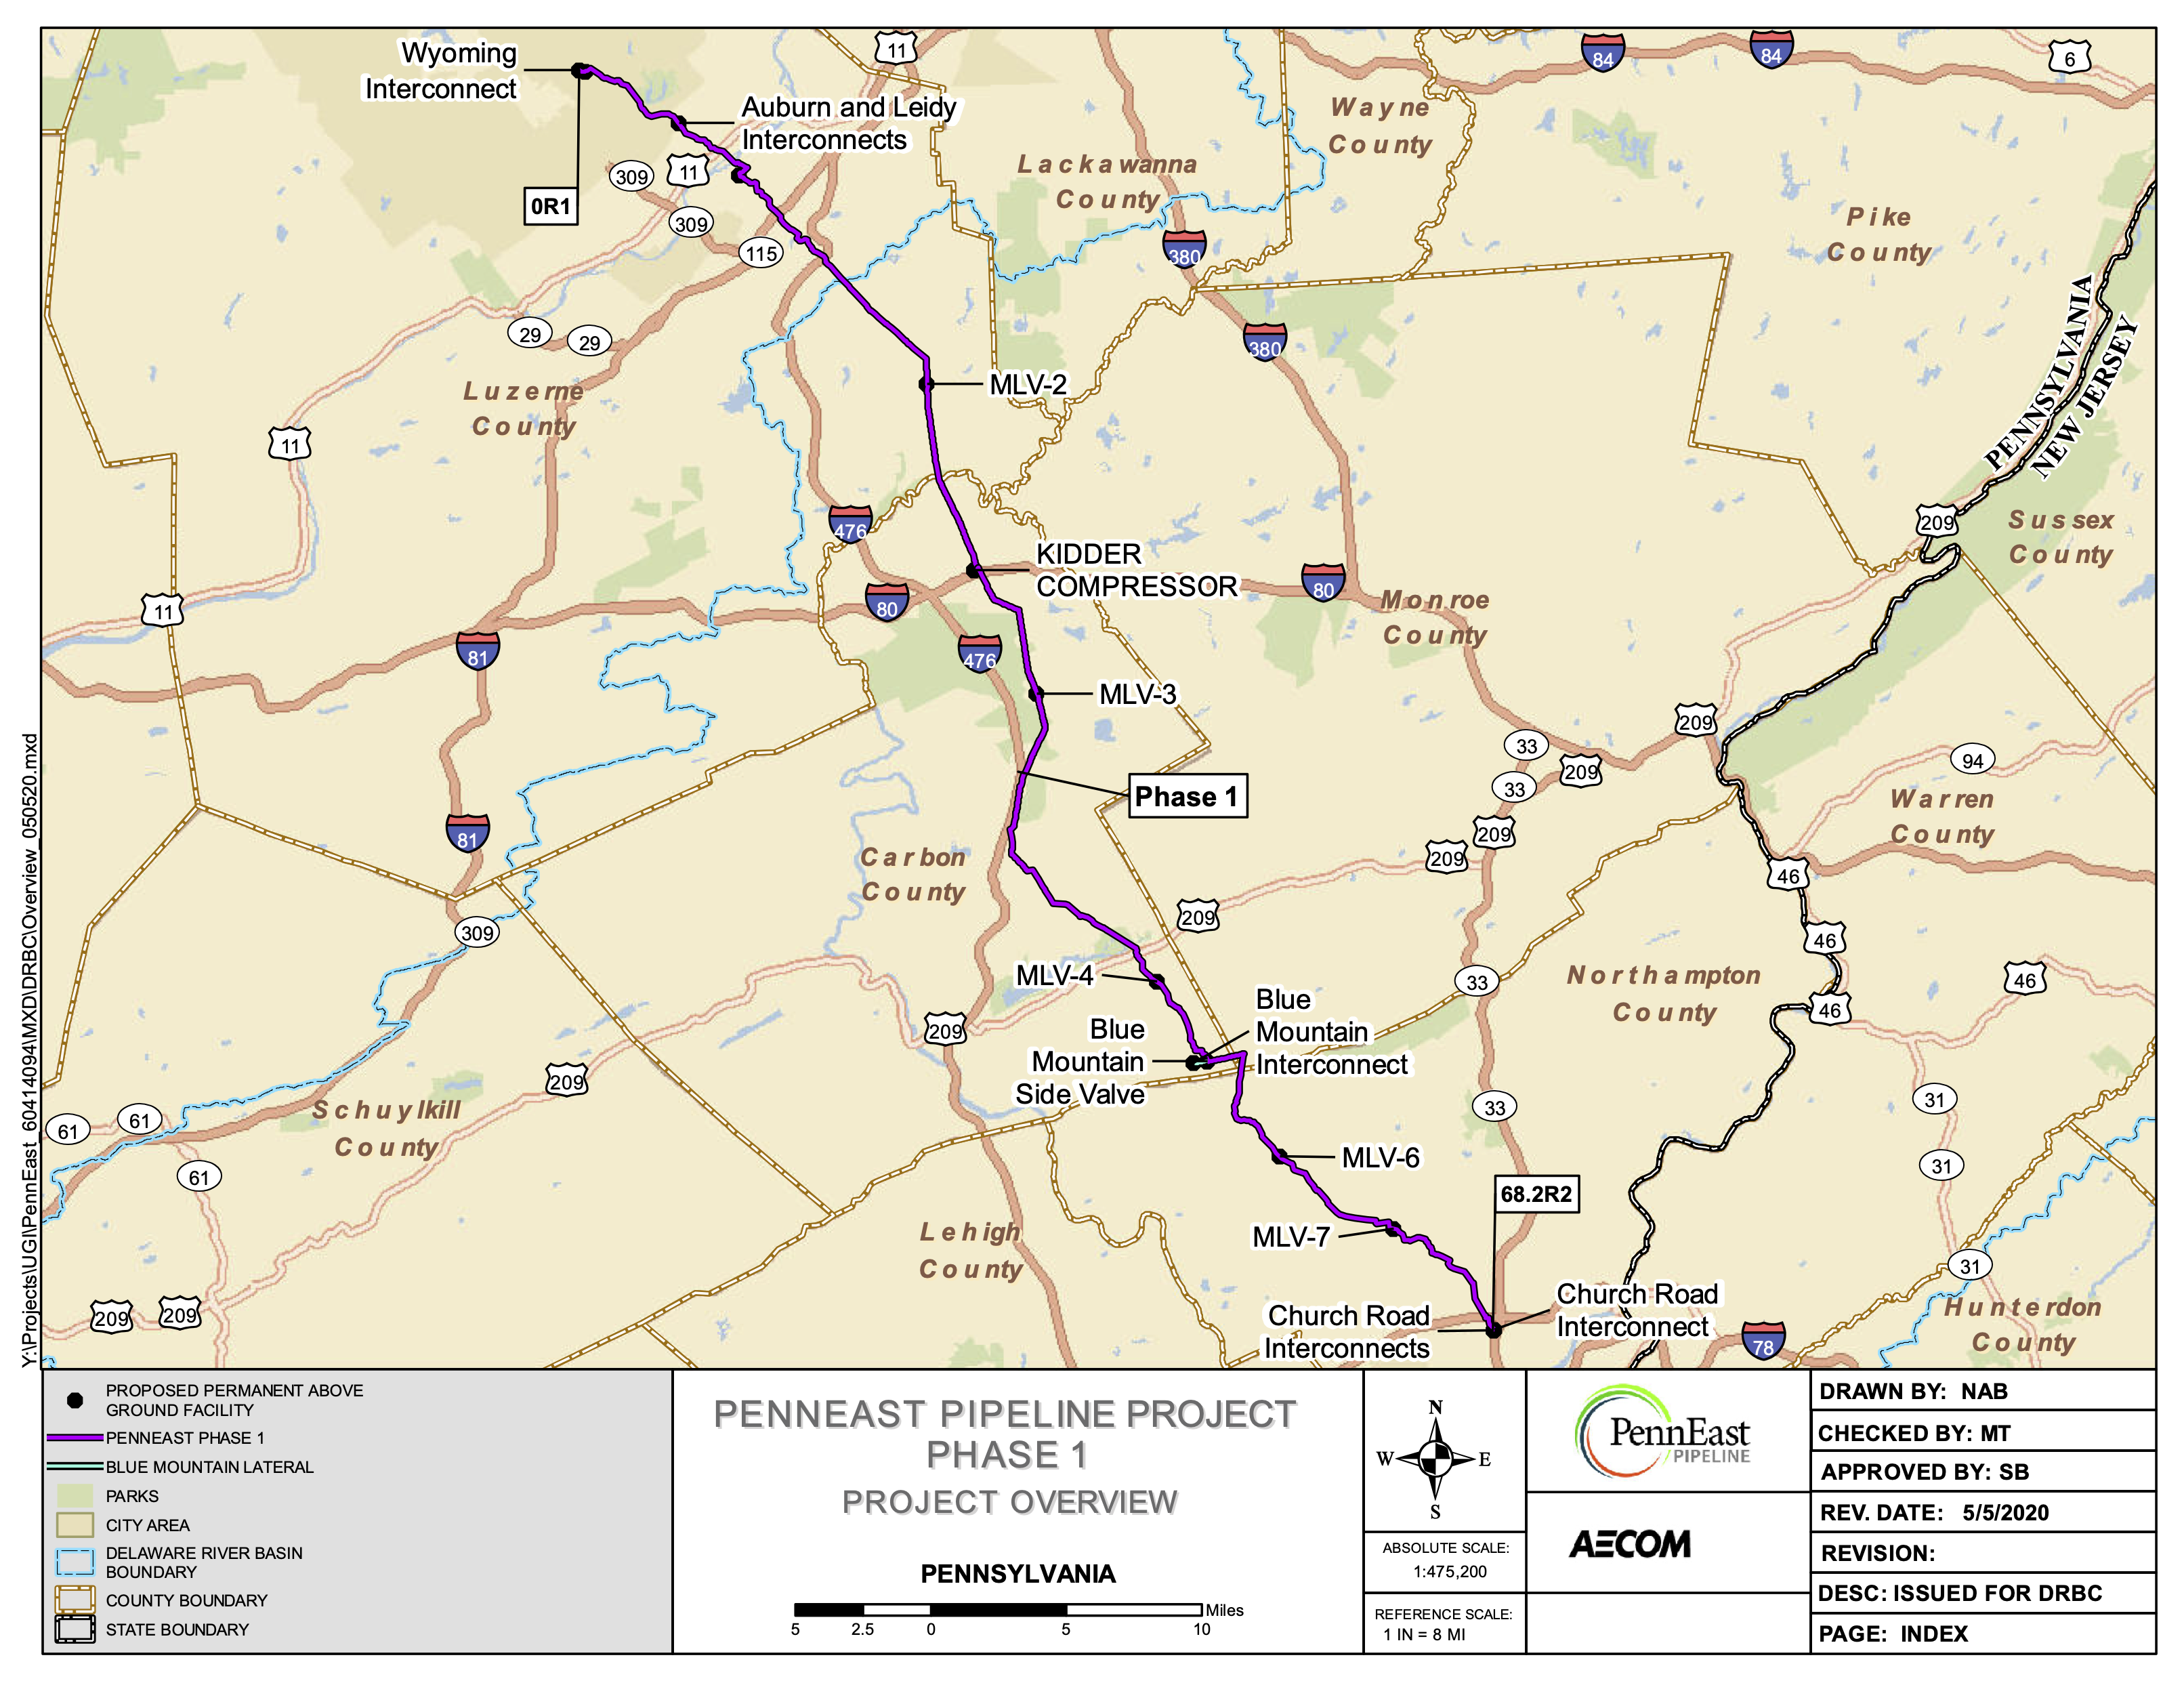 PennEast Pipeline pauses land acquisitions in Pennsylvania